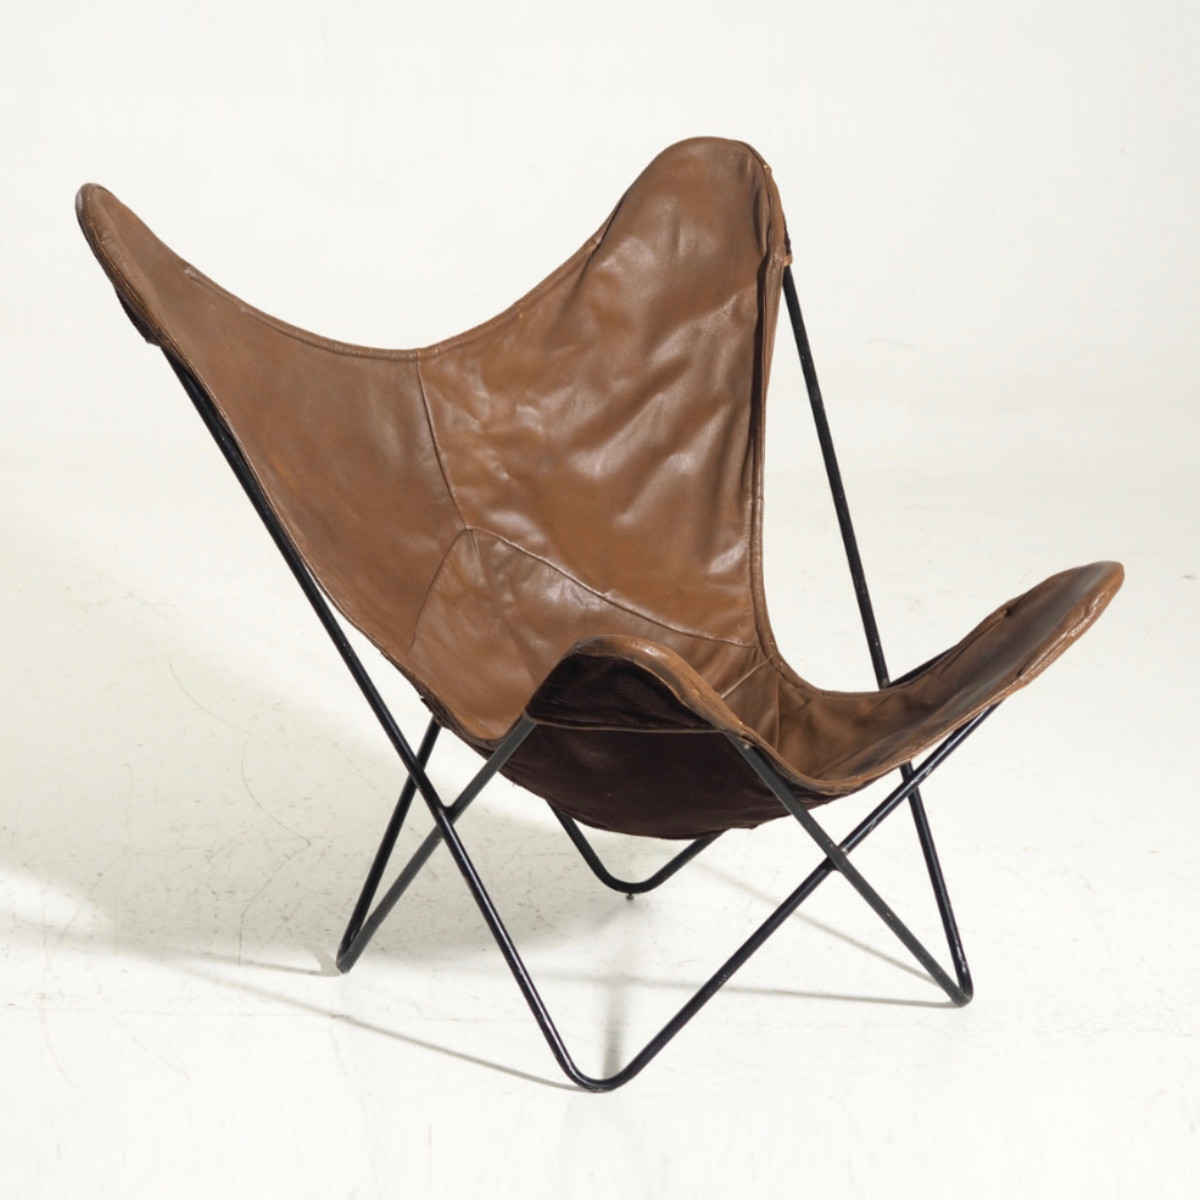 %22Bat%22-chair in leather and black painted steel, 60's : 70's  .jpg